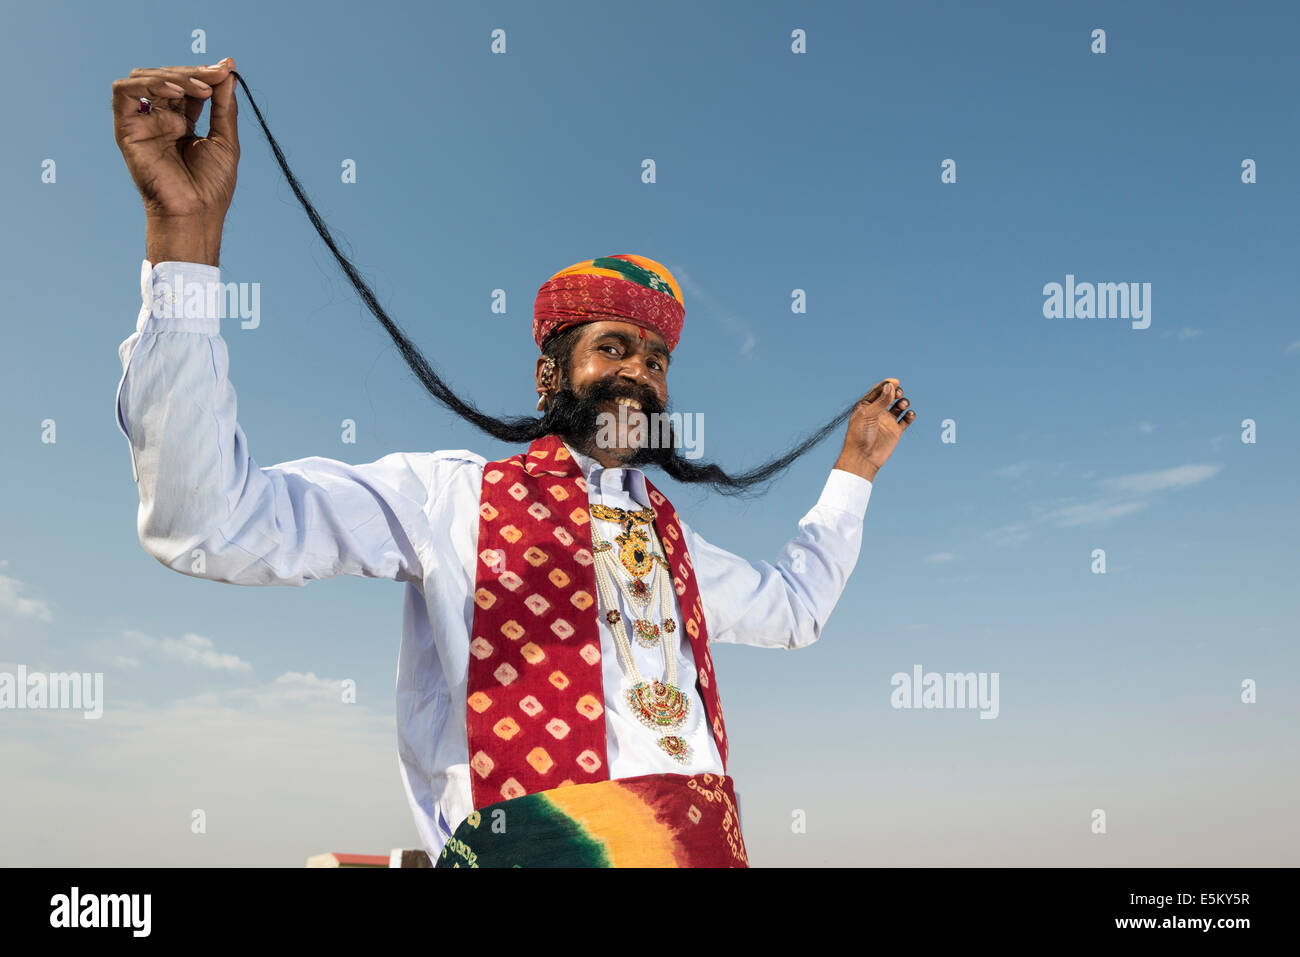 Local man presenting his long mustache, Rajput people, Bikaner, Rajasthan, India - Stock Image